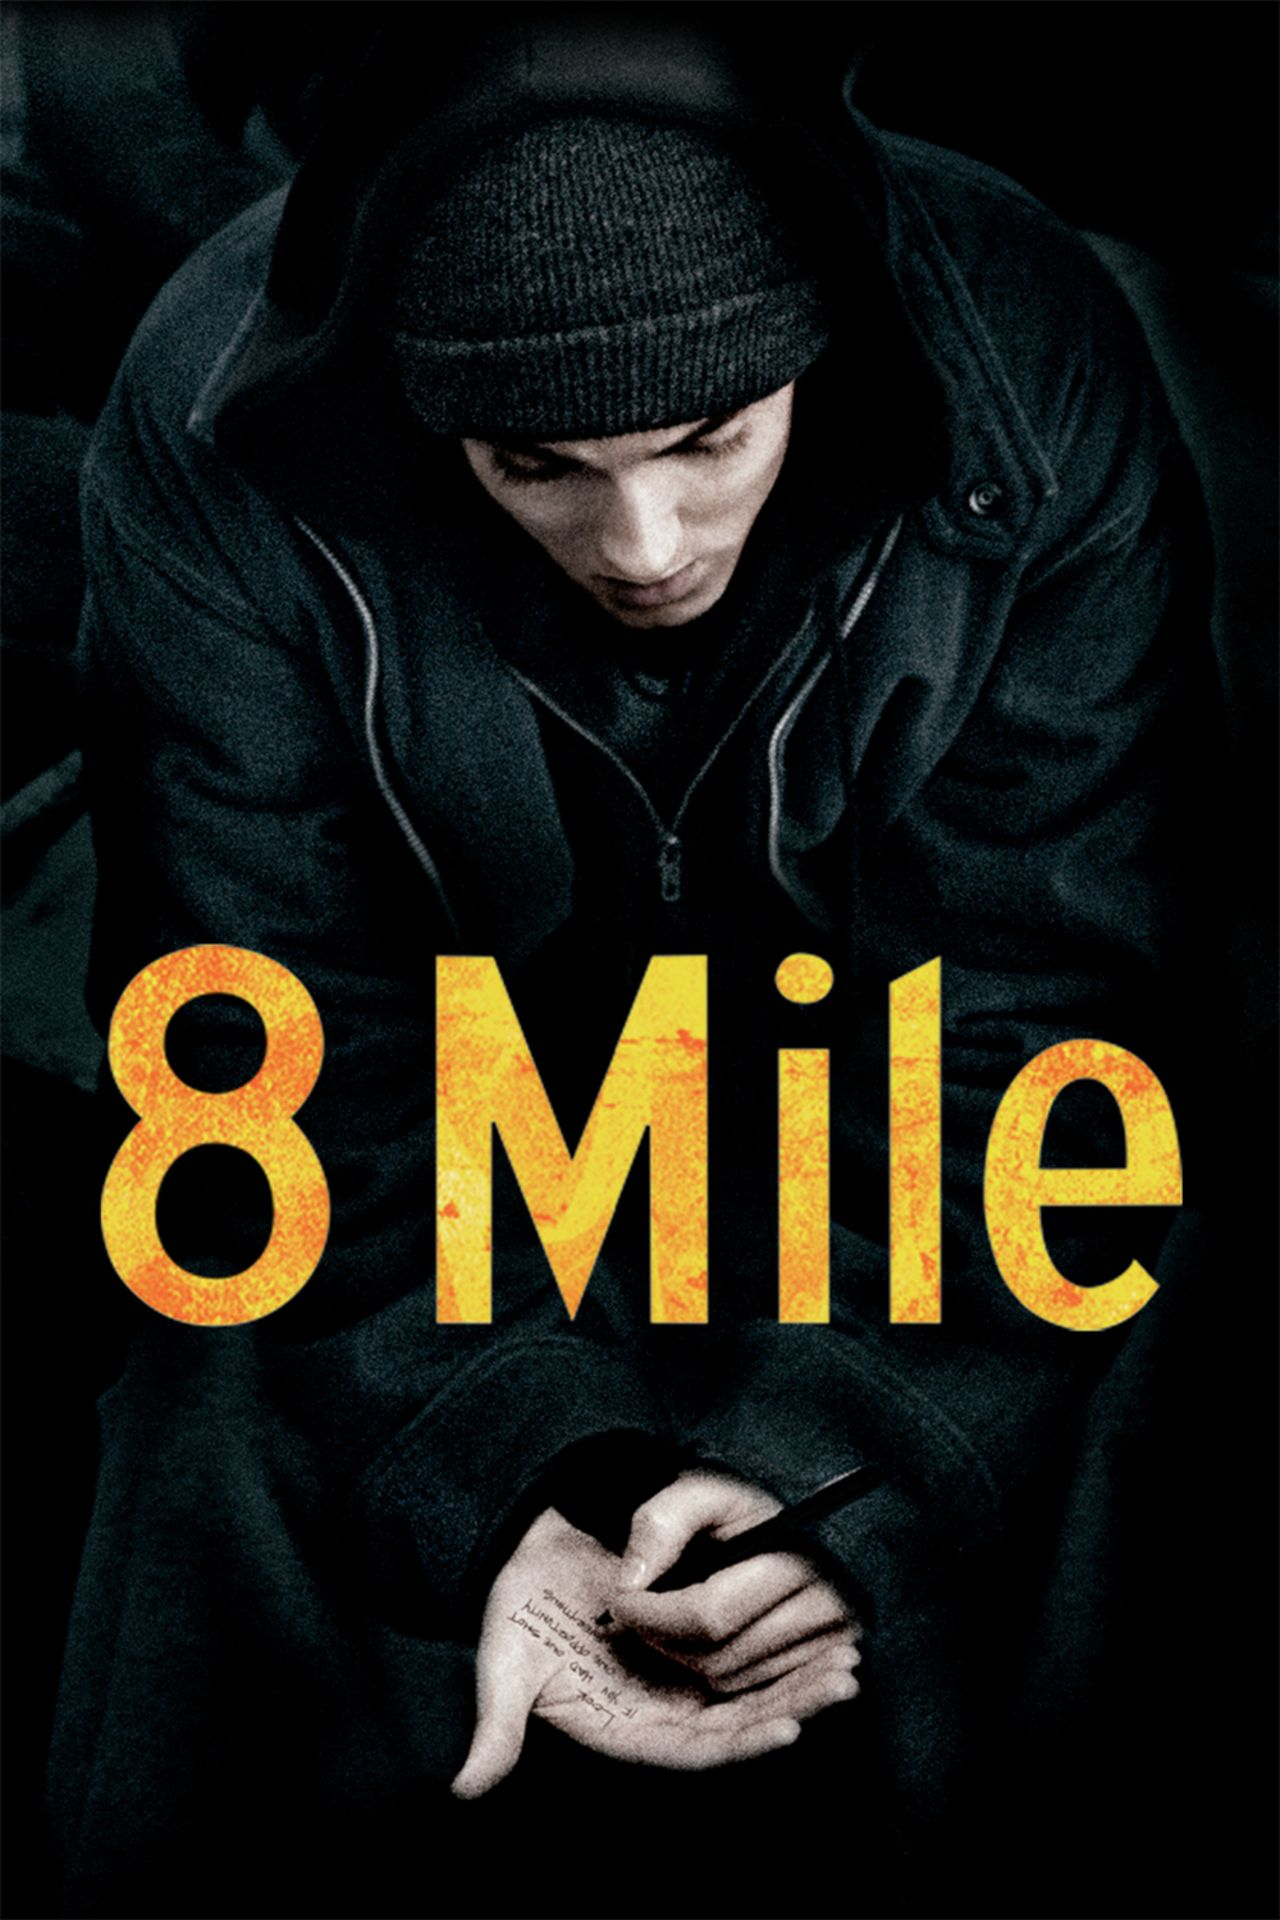 8 mile download in hindi